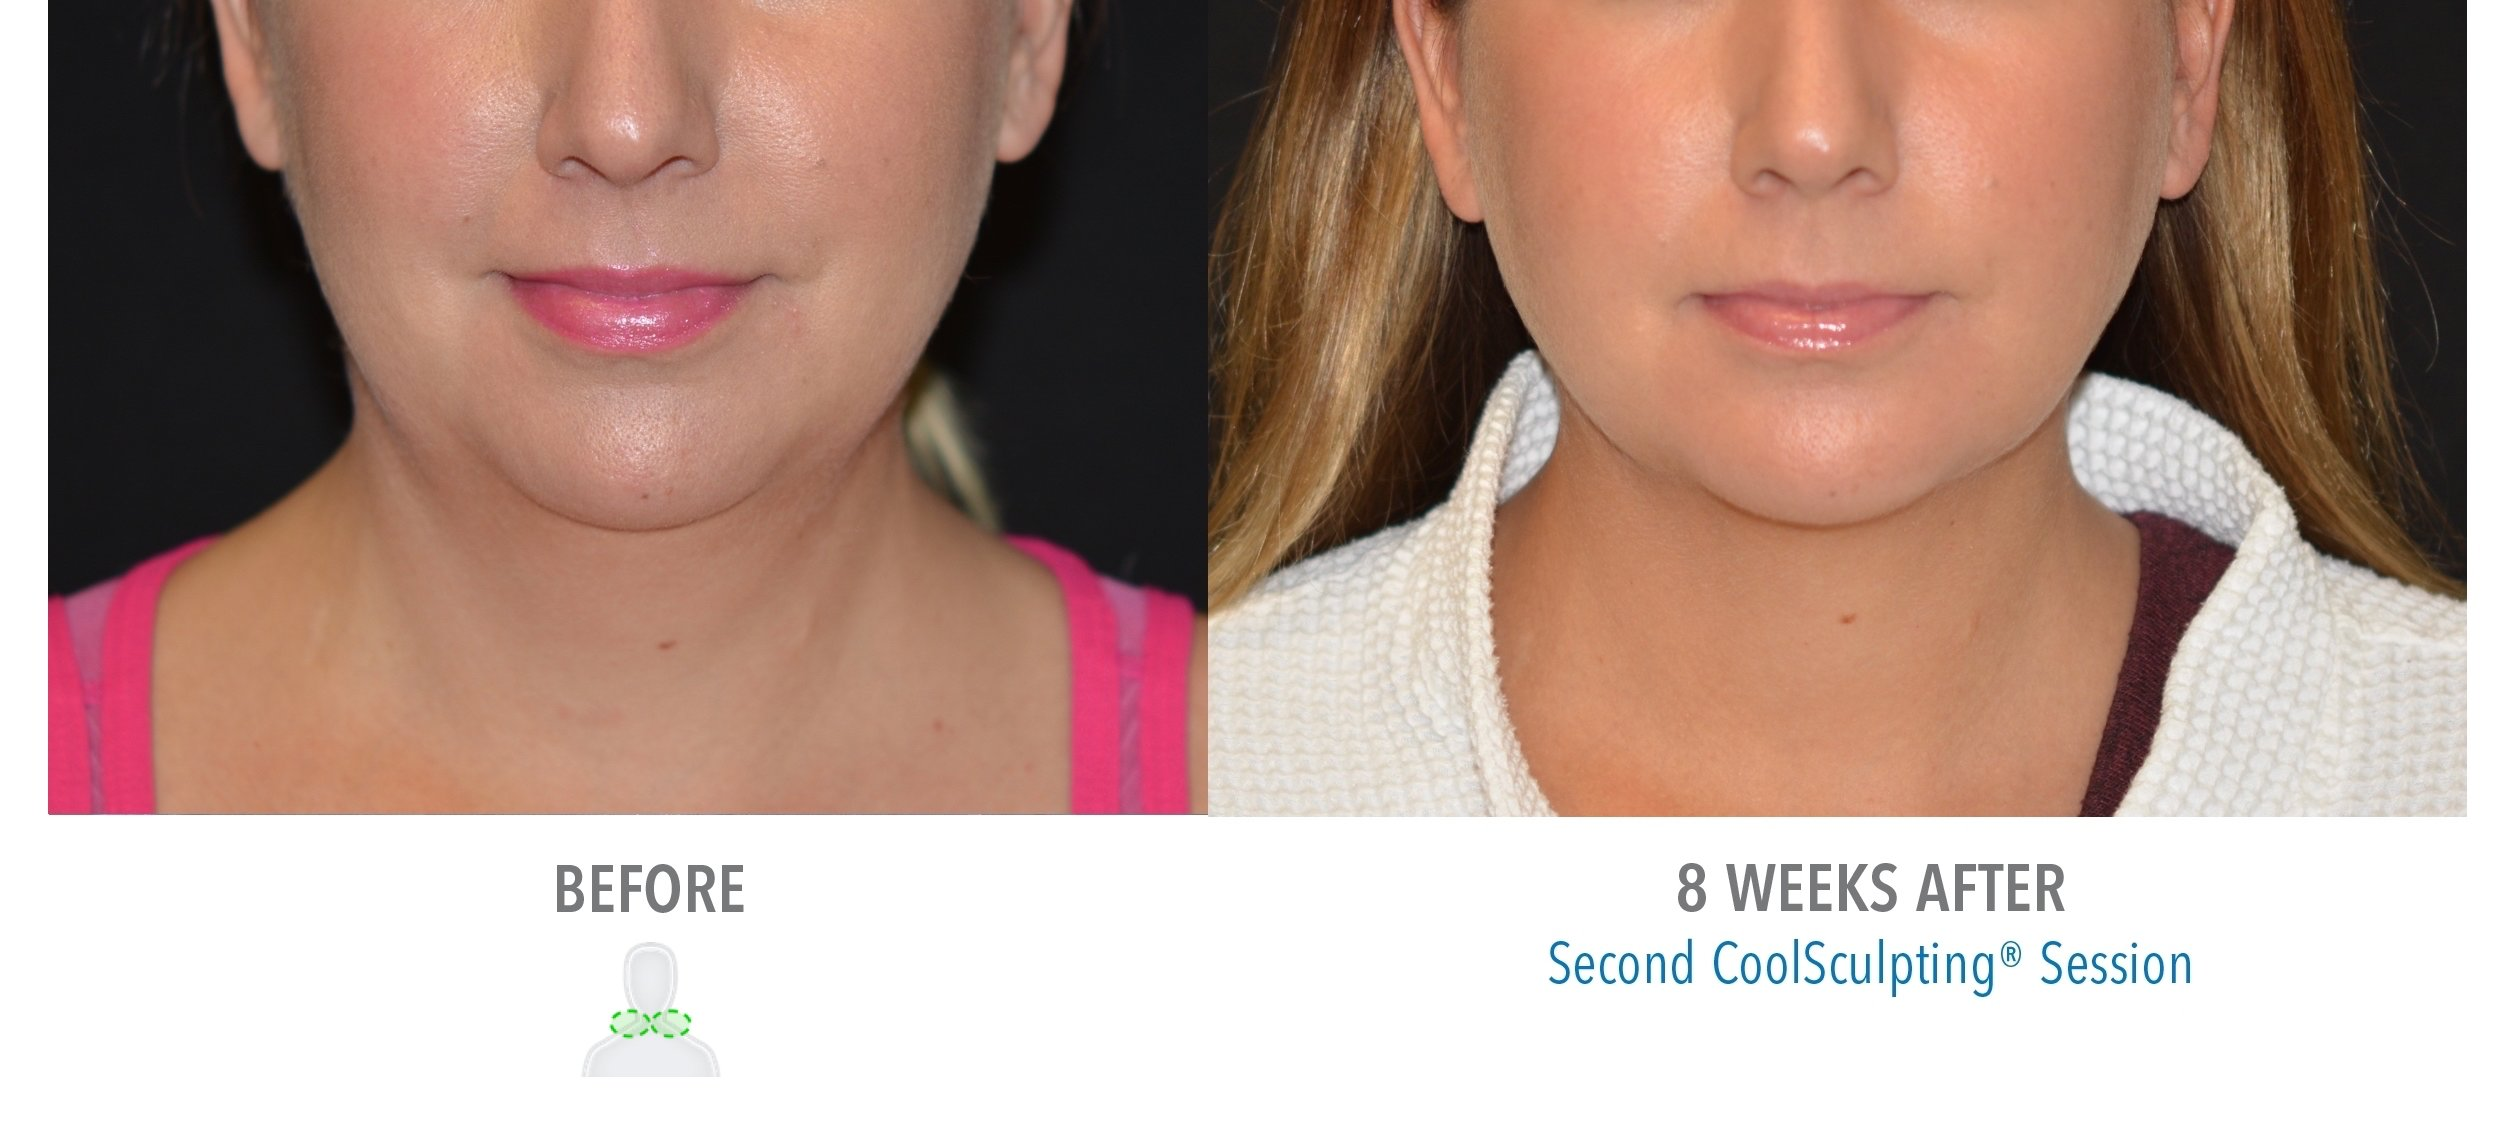 Chin Liposuction Orlando